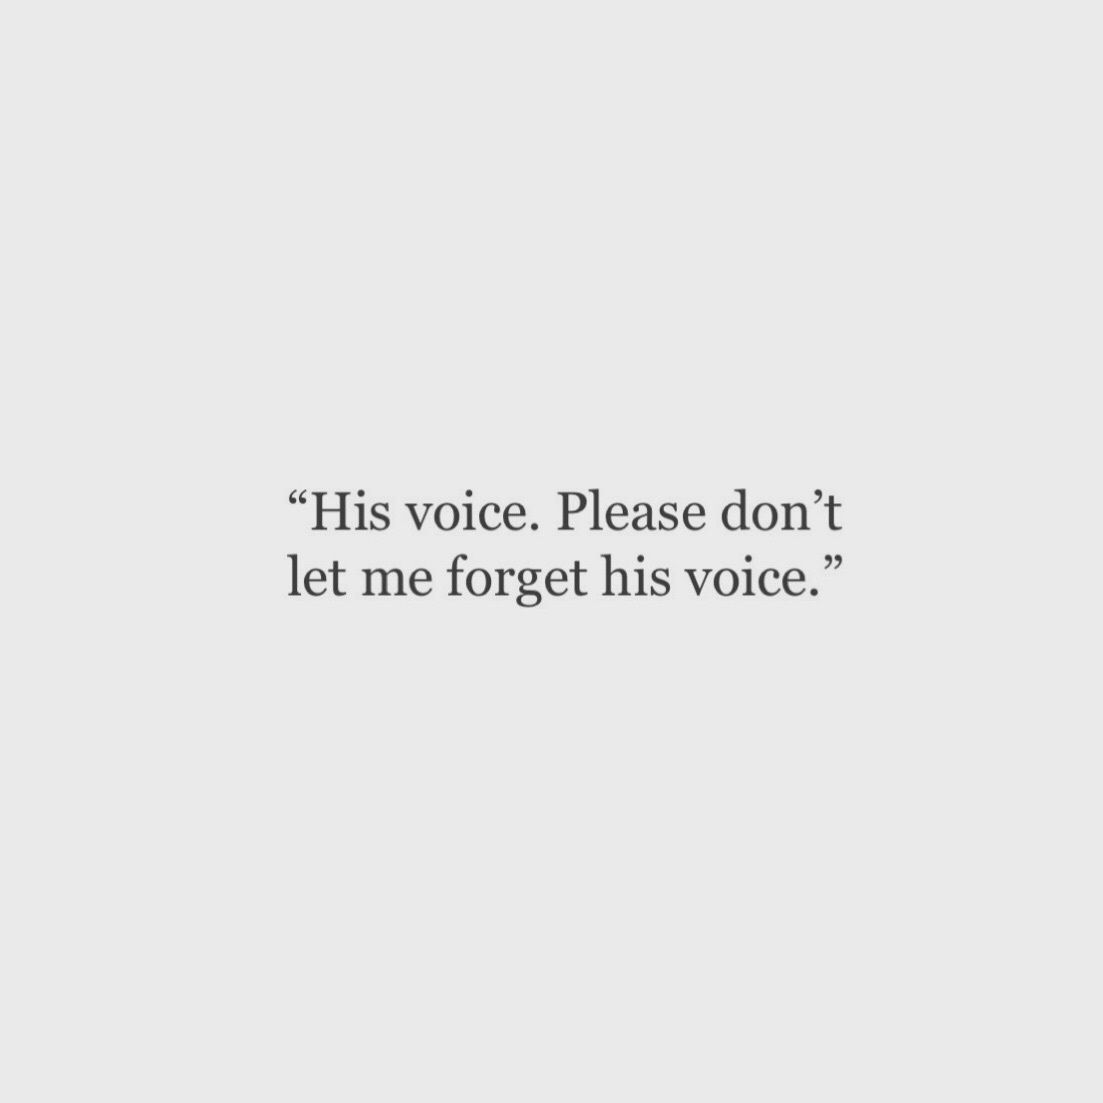 Shared by xzozeboo. Find images and videos about text and Jonghyun on We Heart It - the app to get lost in what you love.